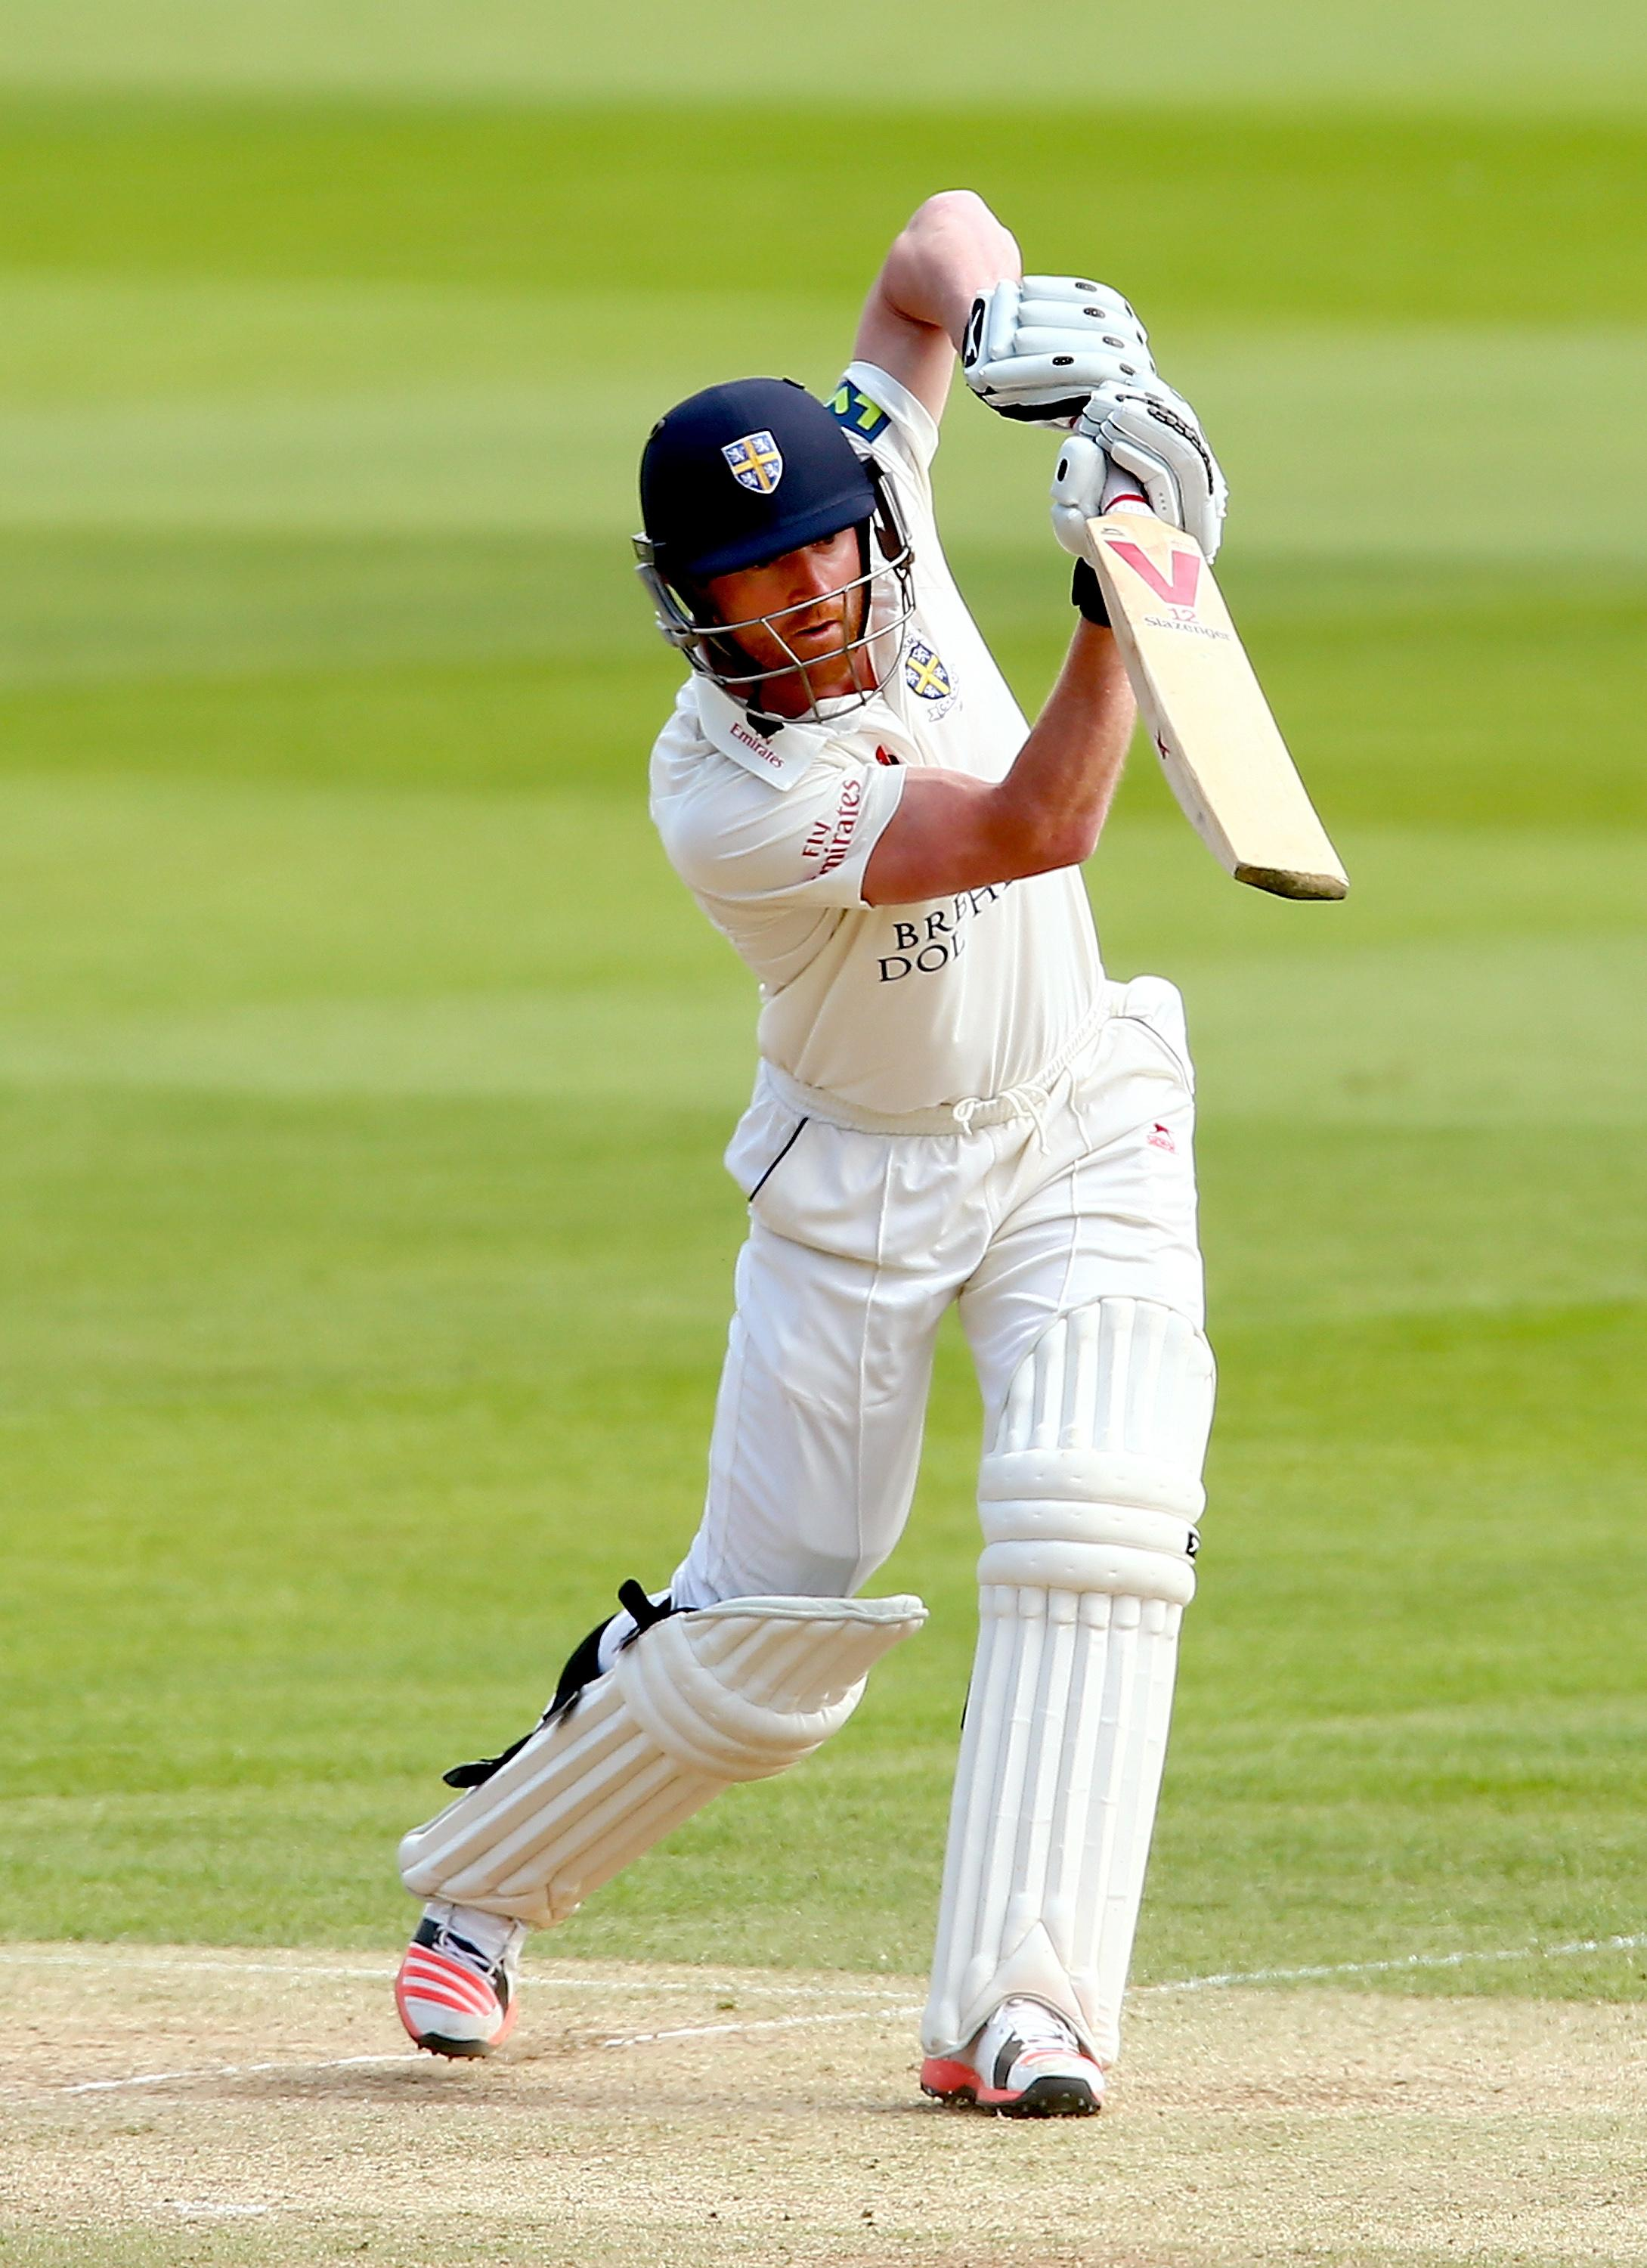 Paul Collingwood scored over 16,000 first-class runs during his career